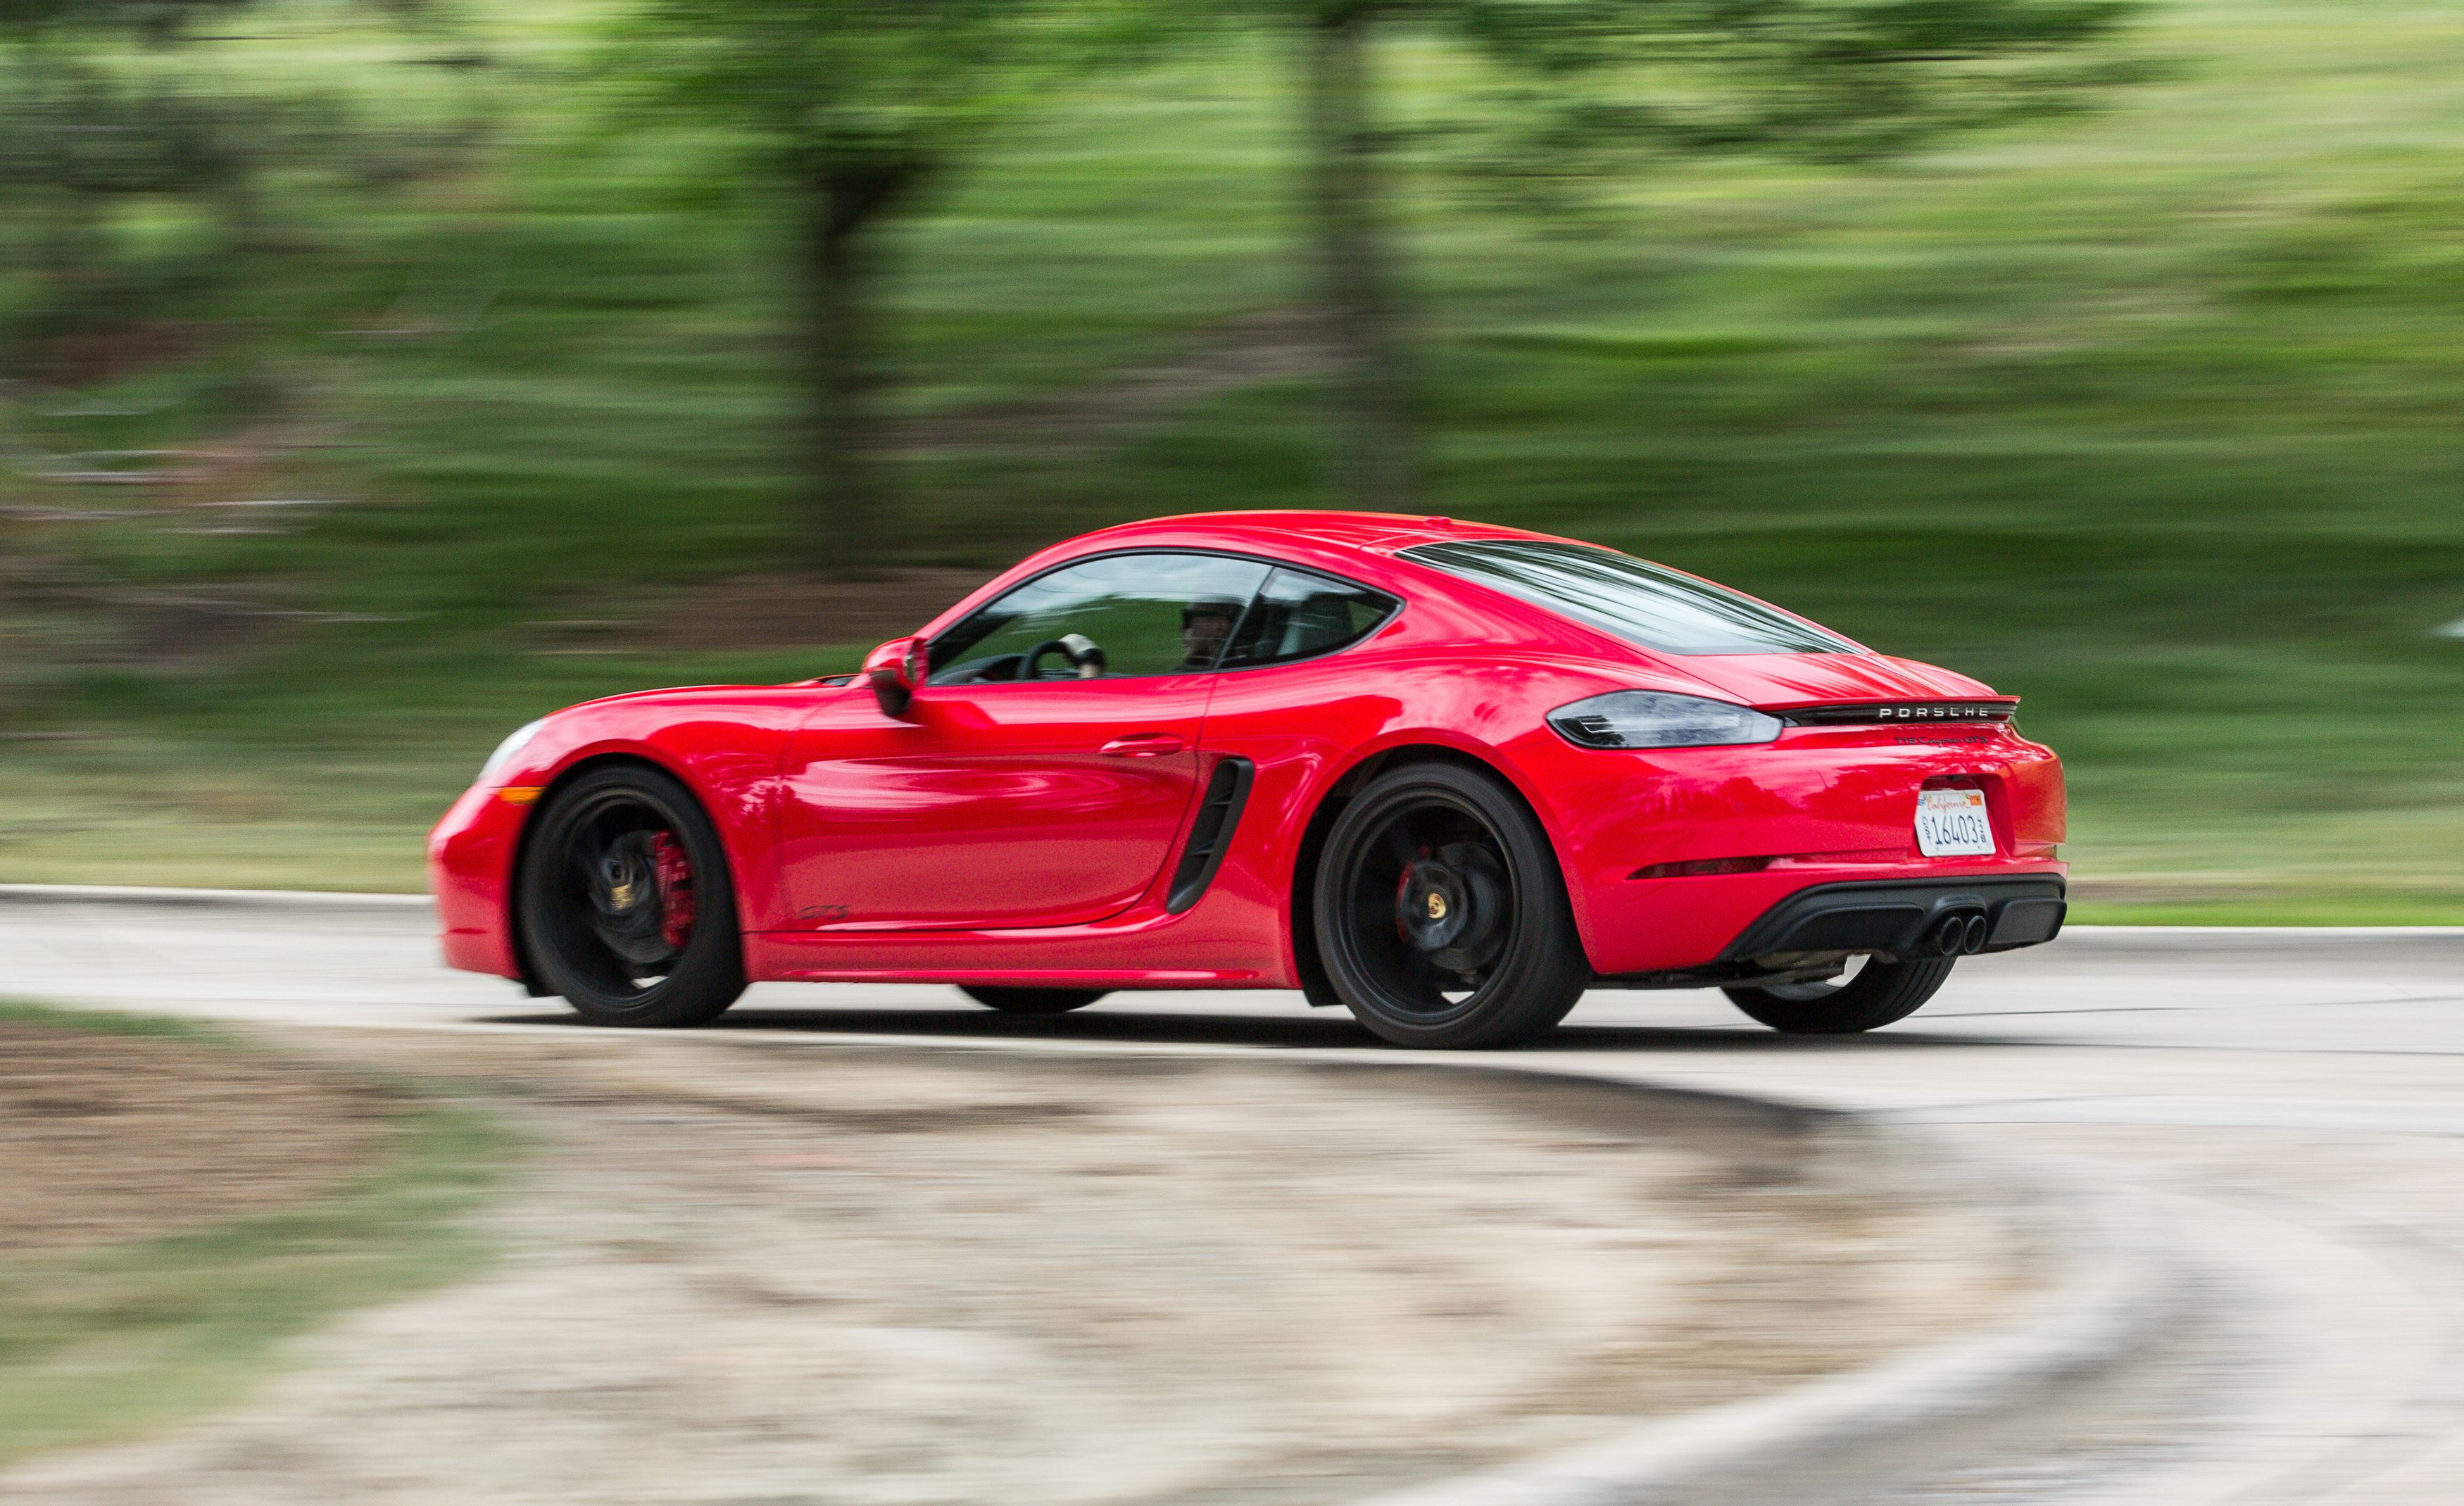 2018 Porsche 718 Boxster And Cayman Gts Performance Models